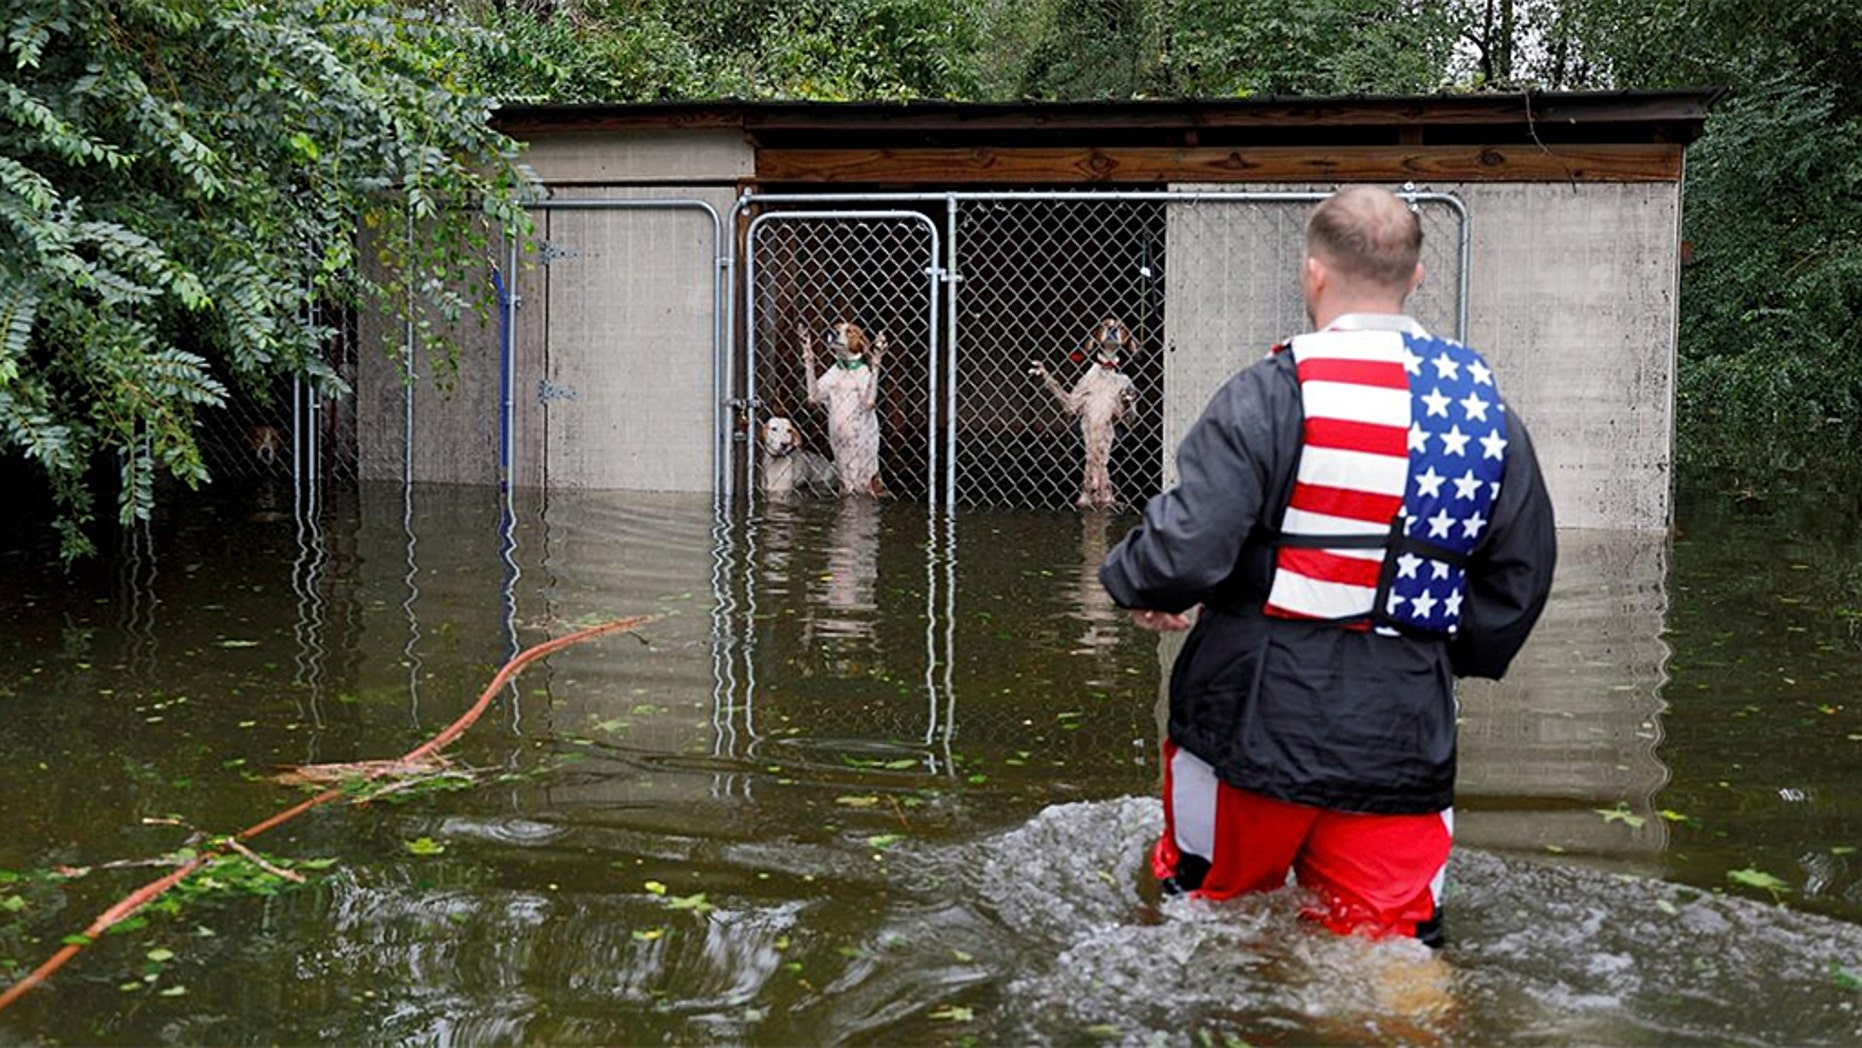 Panicked dogs that were left caged by an owner who fled rising flood waters in the aftermath of Hurricane Florence in Leland, North Carolina.